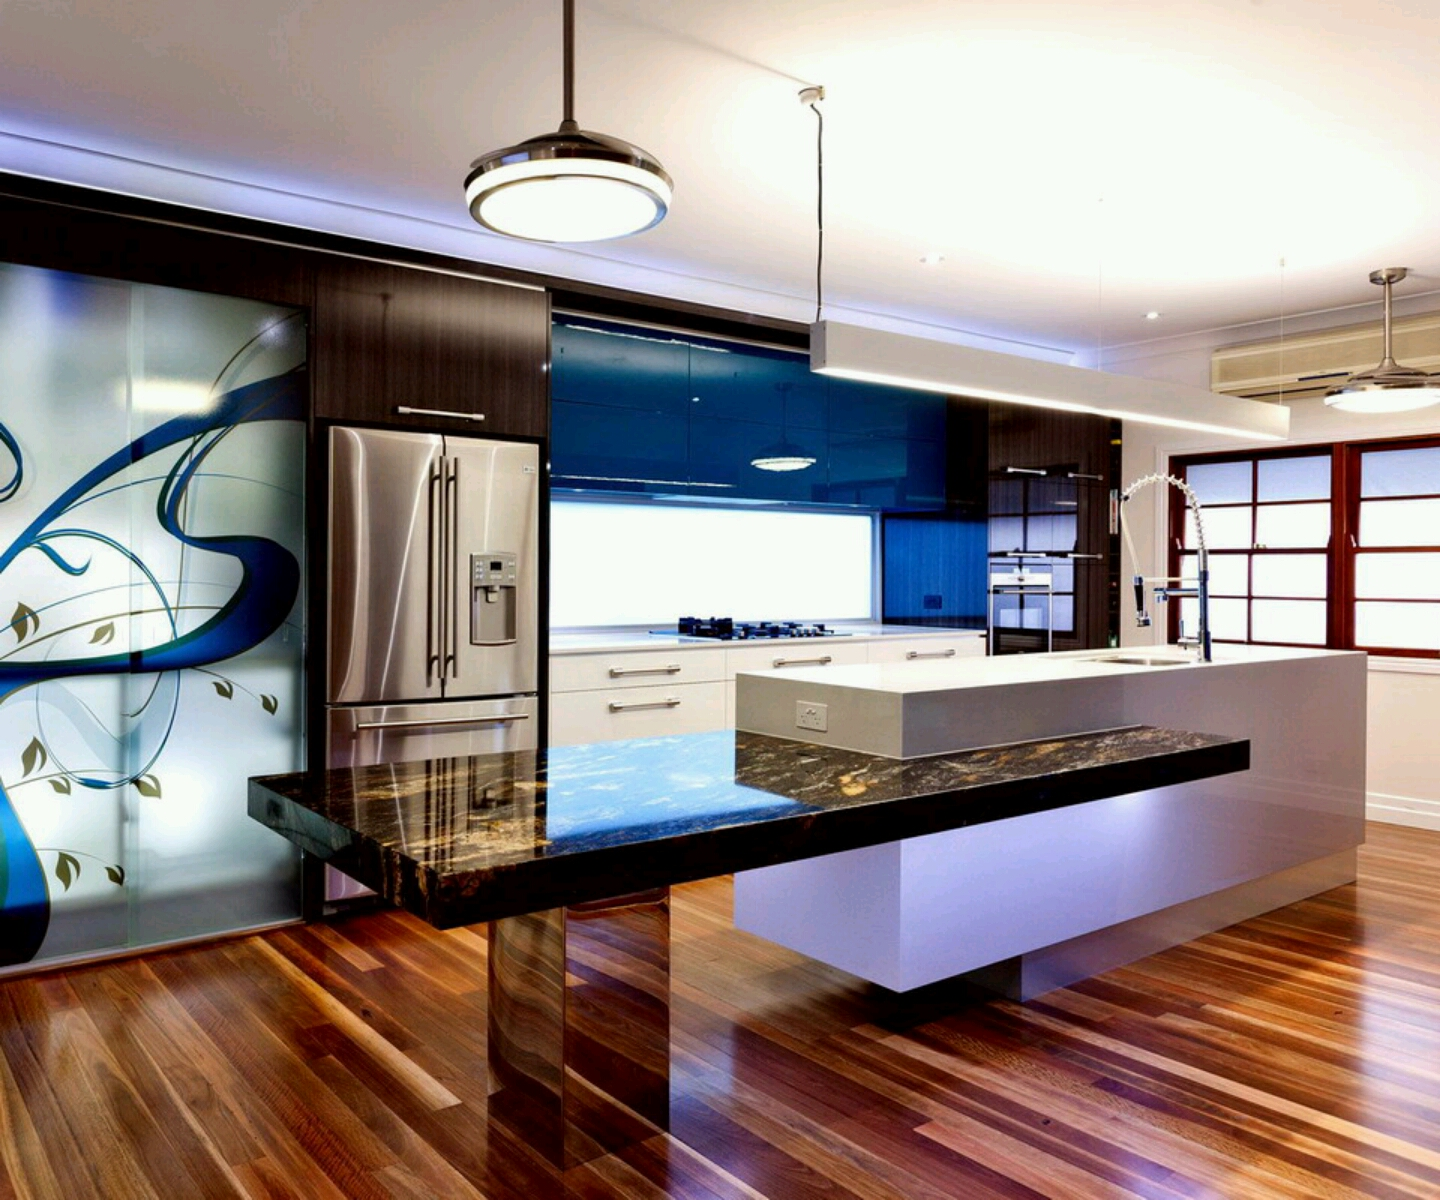 Ultra modern kitchen designs ideas for Interior designs kitchen